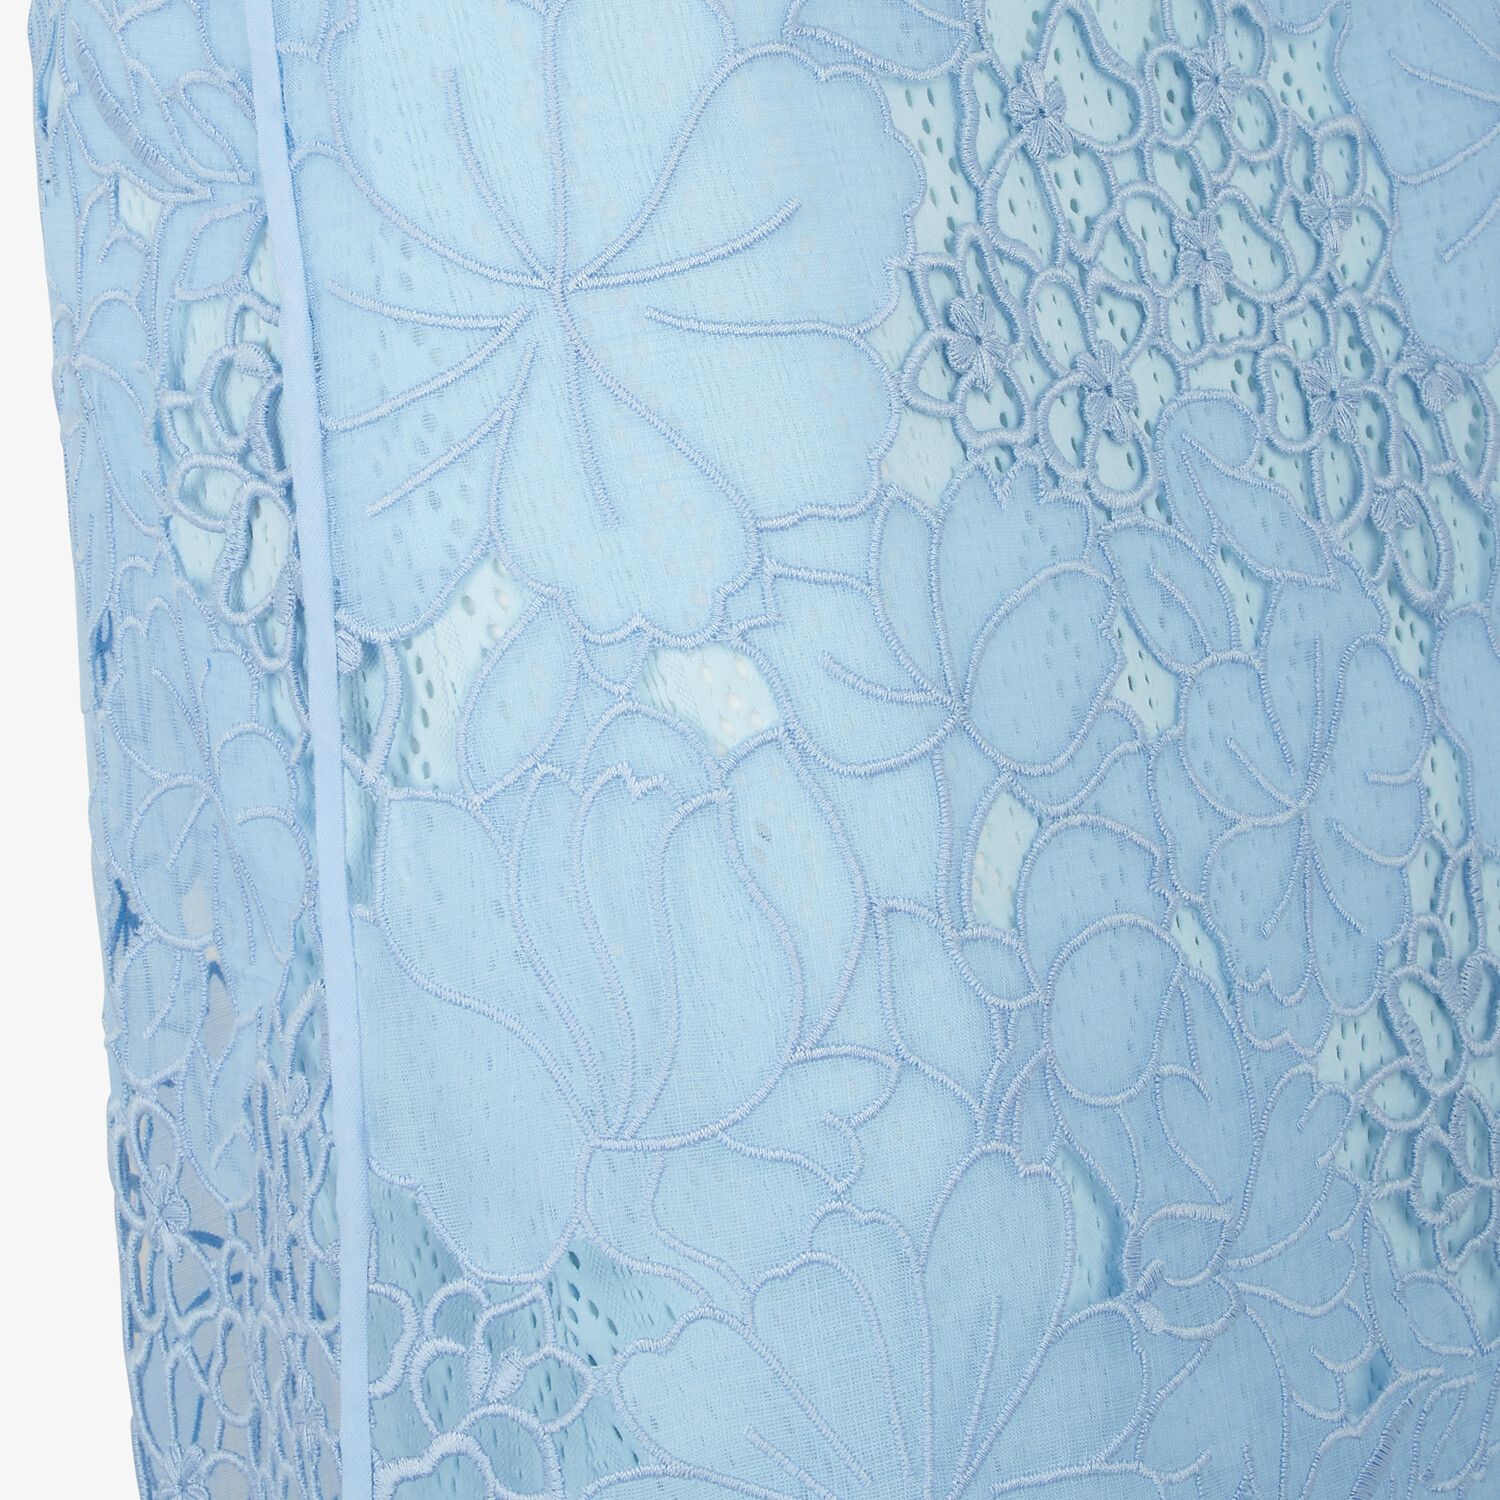 FENDI SKIRT - Light blue lace skirt - view 3 detail